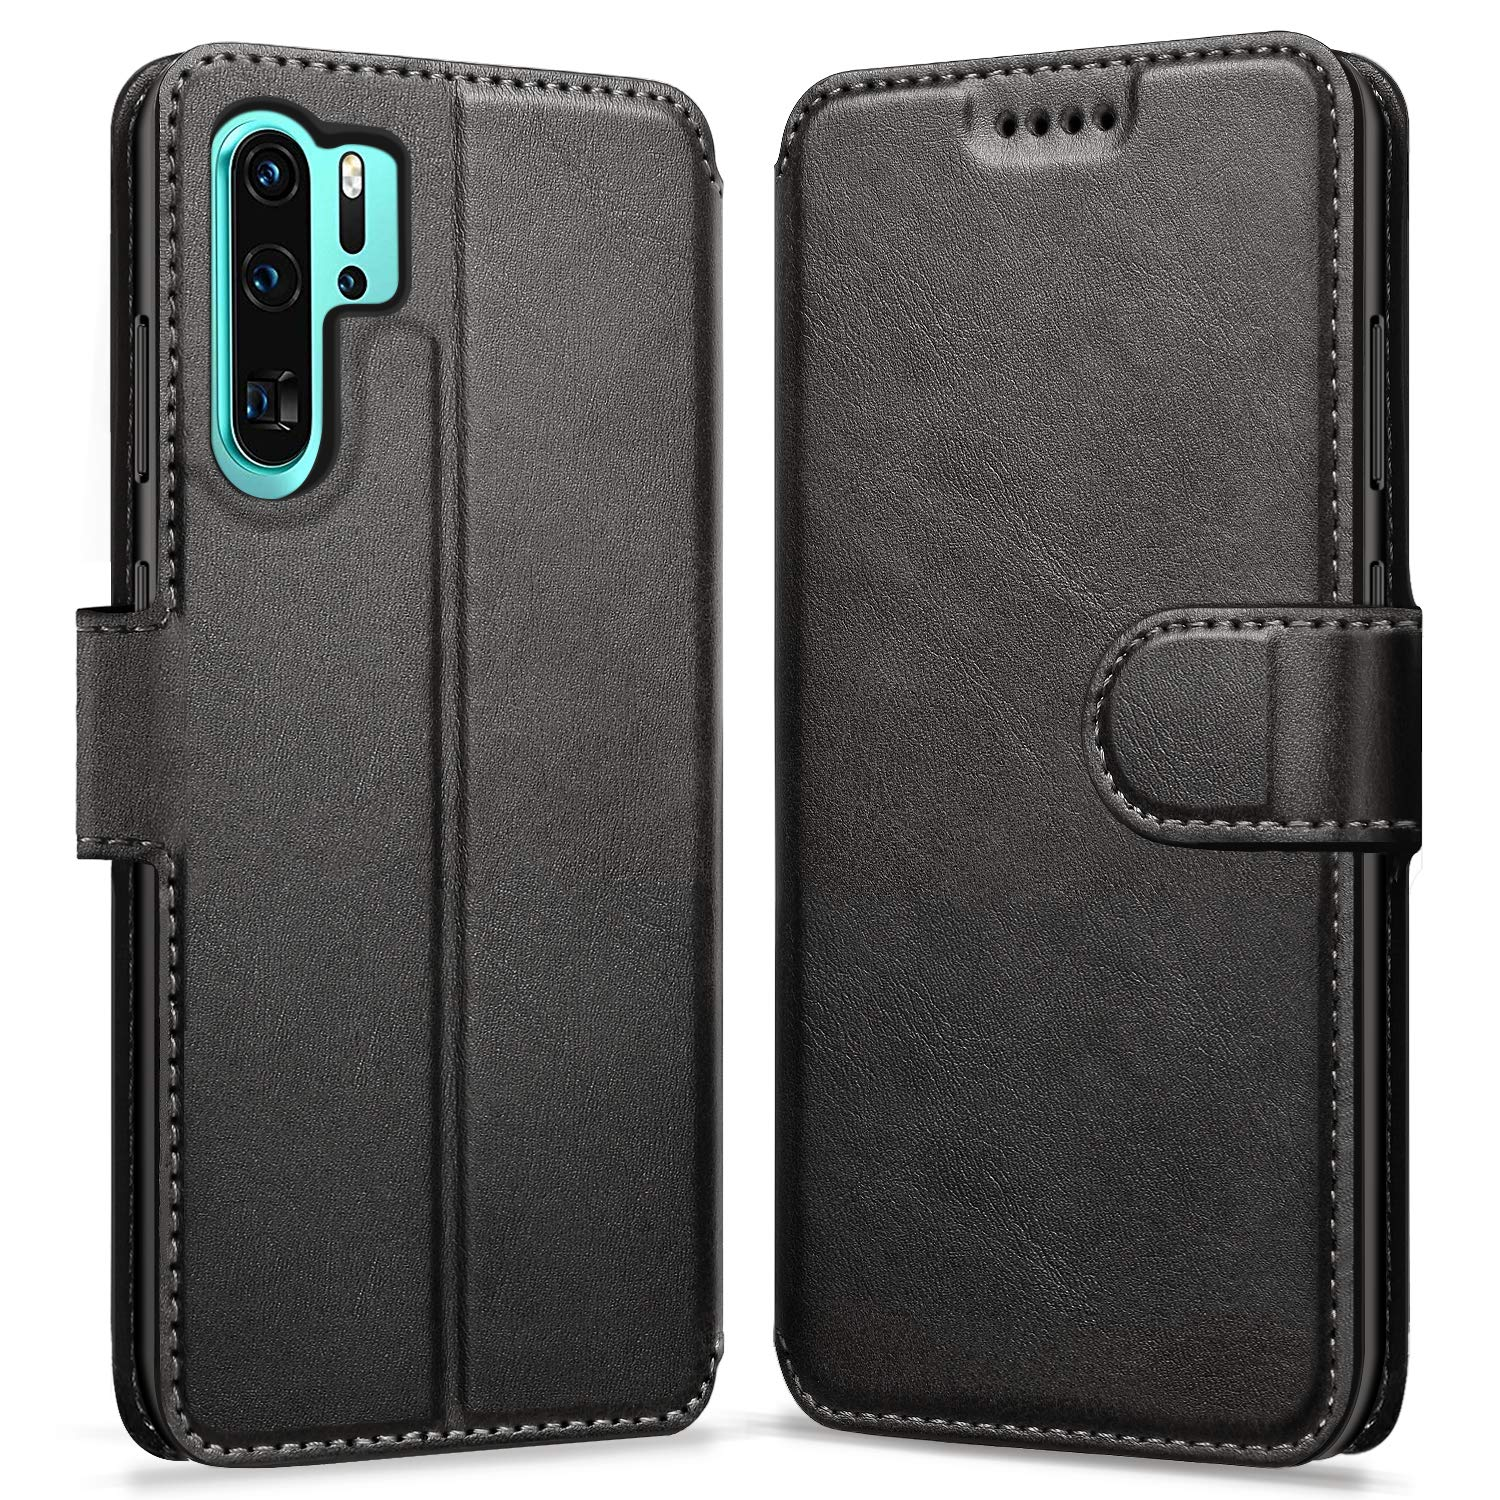 ykooe Case Compatible with Huawei P30 Pro, Leather Wallet Flip Case Huawei P30 Pro Phone Case with Card Slots Protective Cover for Huawei P30 Pro